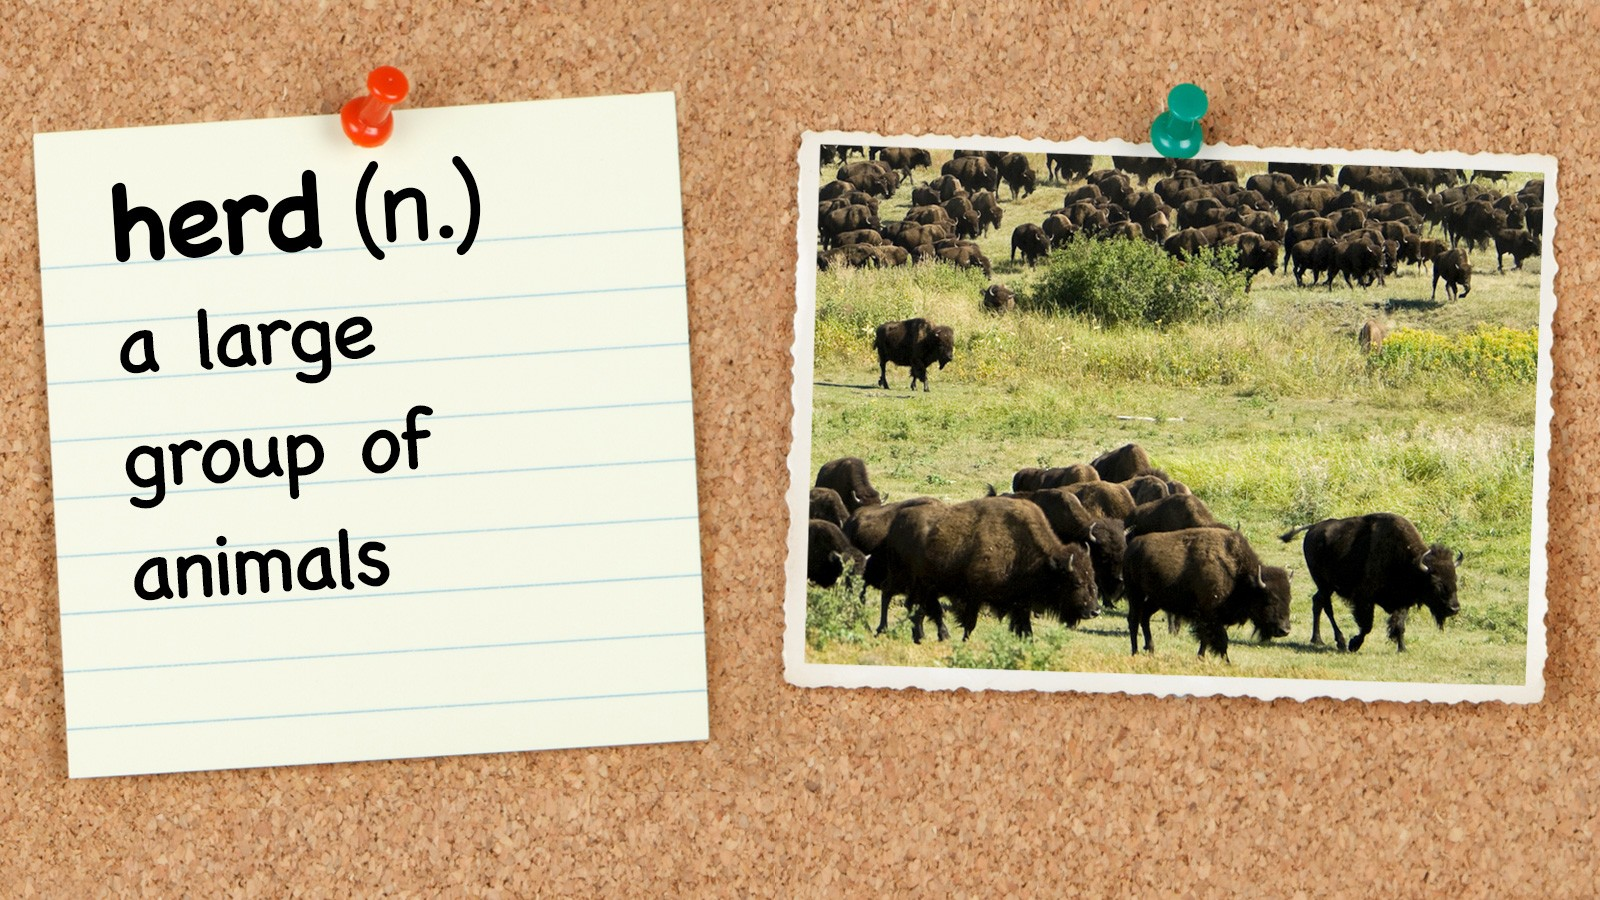 Vocabulary word herd with definition